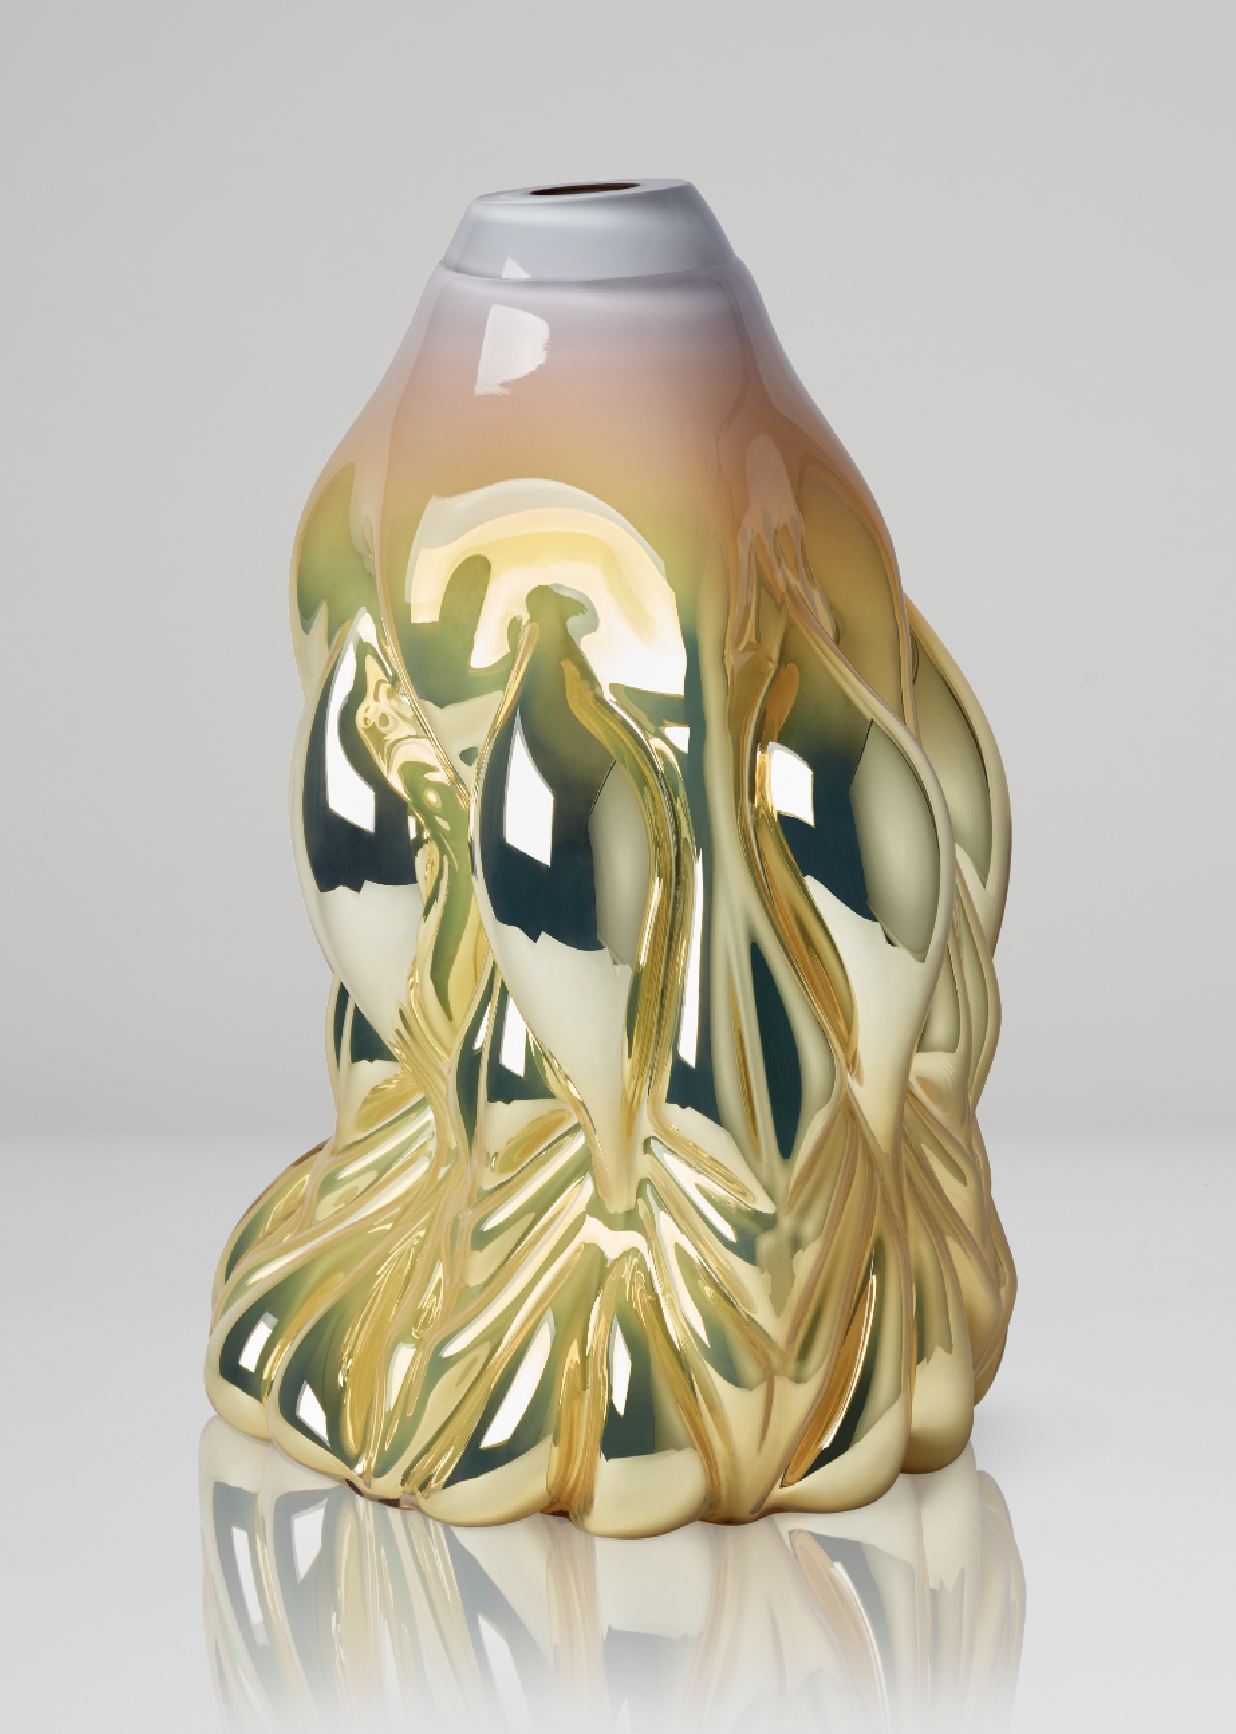 Hanna Hansdotter.  Goldfish Print, soft yellow metallic , 2018, Boda Glasbruk, Shape-blown glass, silver foiled. 48 x 31 cm. Edition 1+2 AP.  Available through CFHILL.